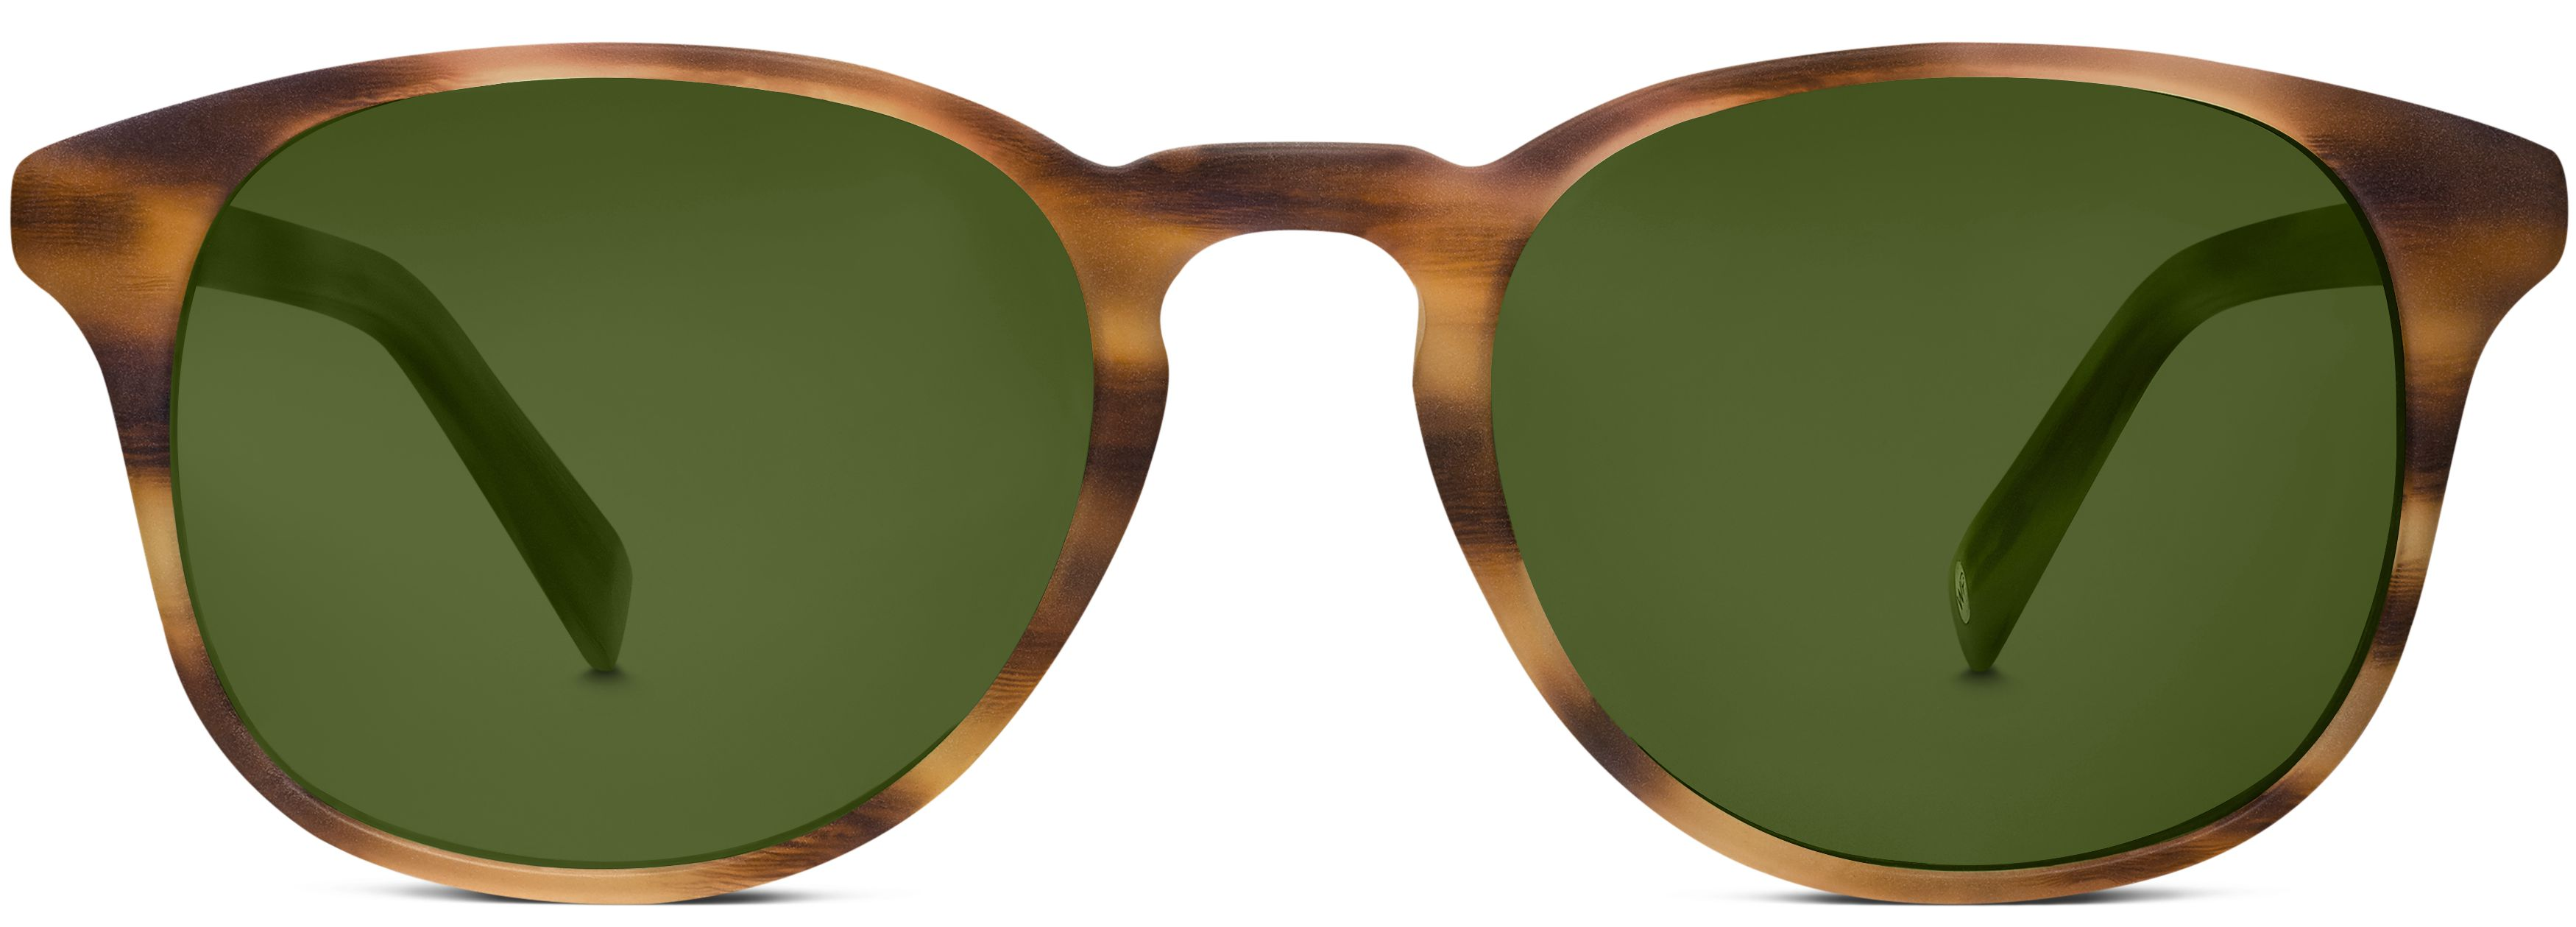 8301bc252e Downing Wide Sunglasses in English Oak Matte with Bottle Green lenses for  Men